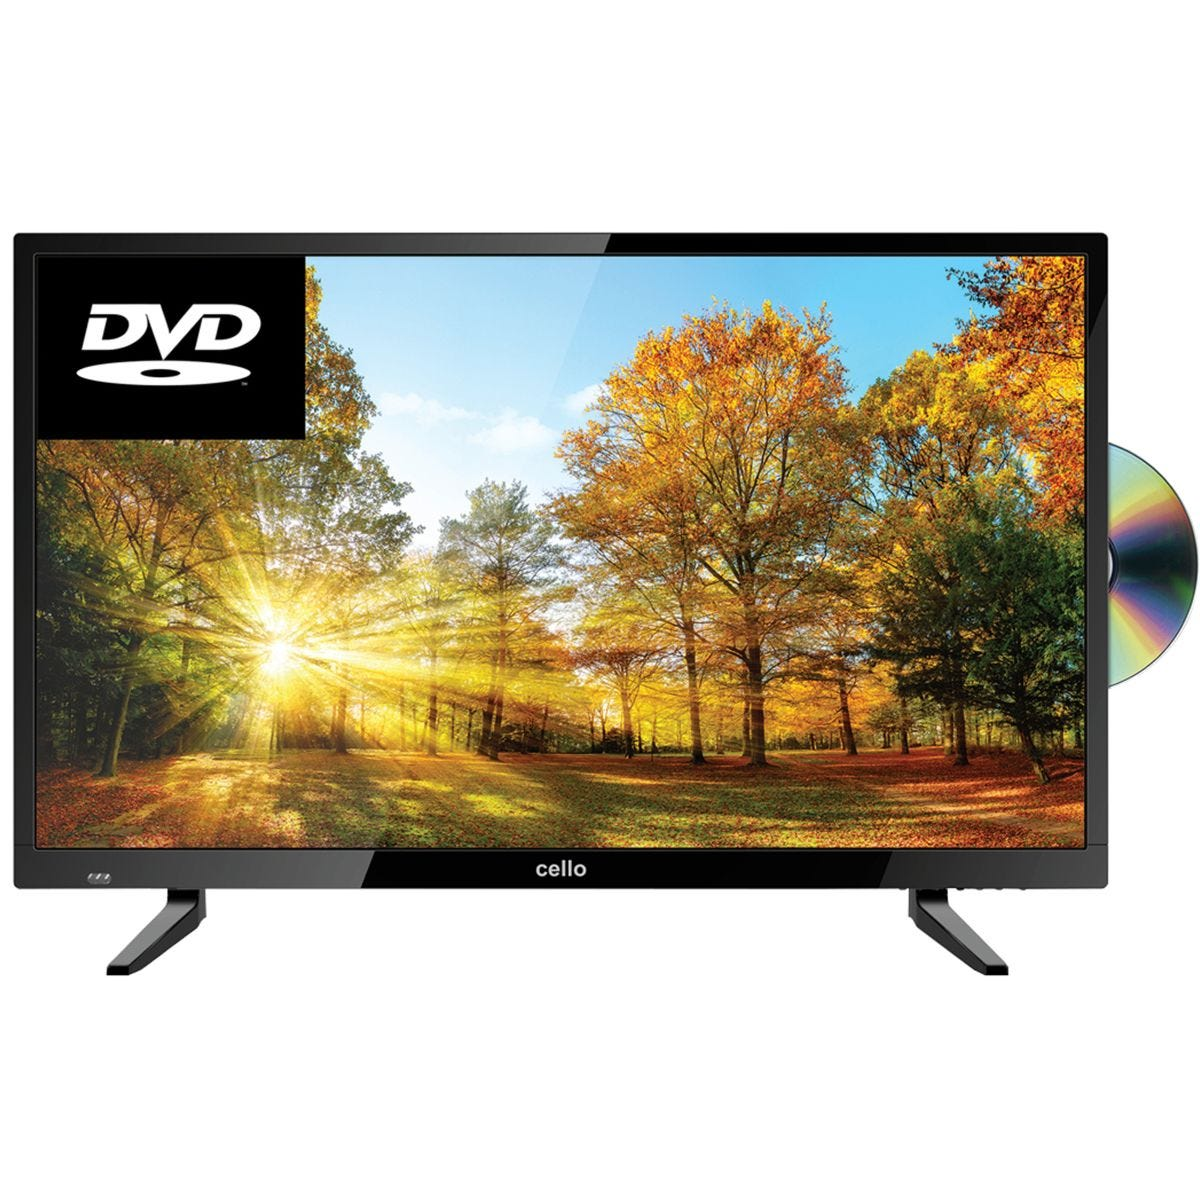 Cello 32 Inch HD Ready Freeview T2 HD TV with Built-in DVD Player - Black